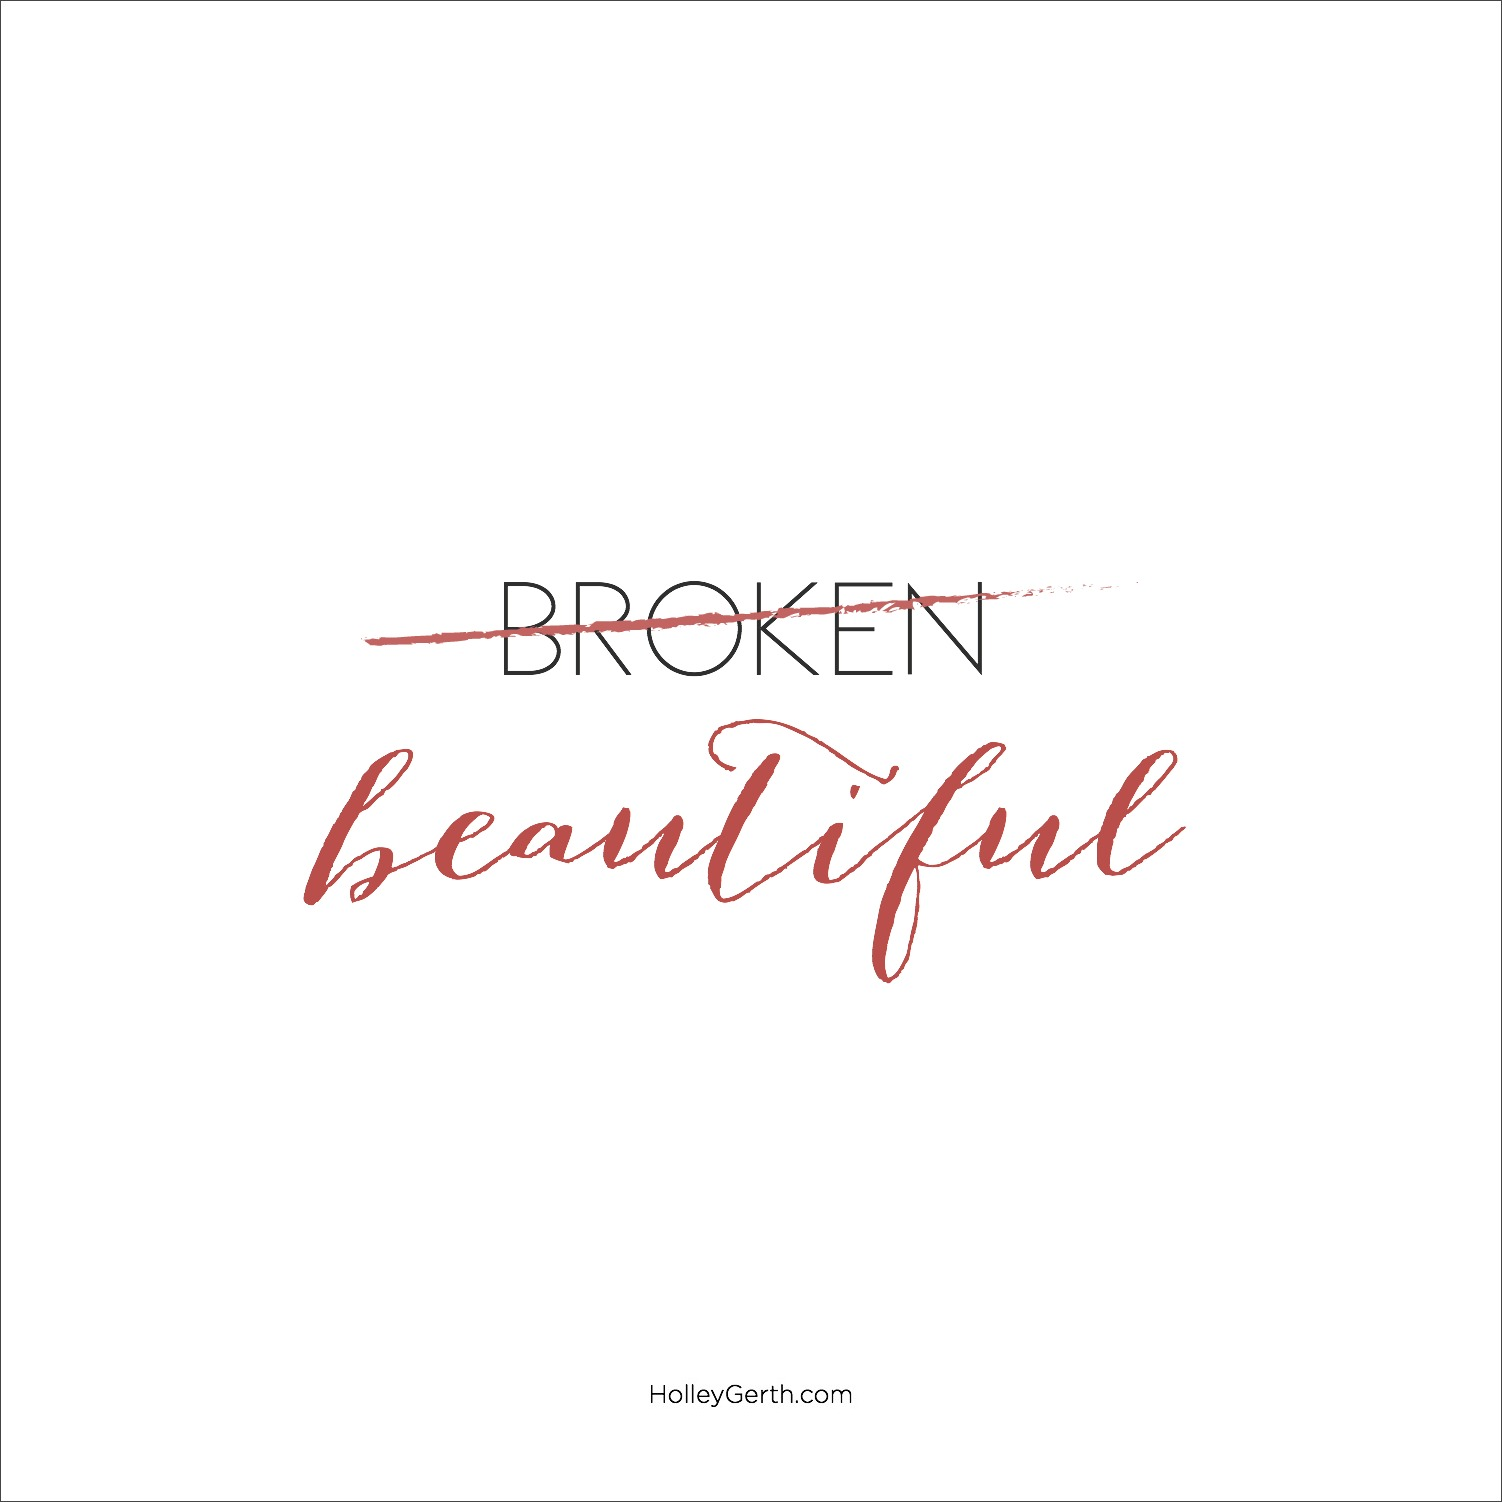 We are Broken. We are Beautiful. We Are Beloved.